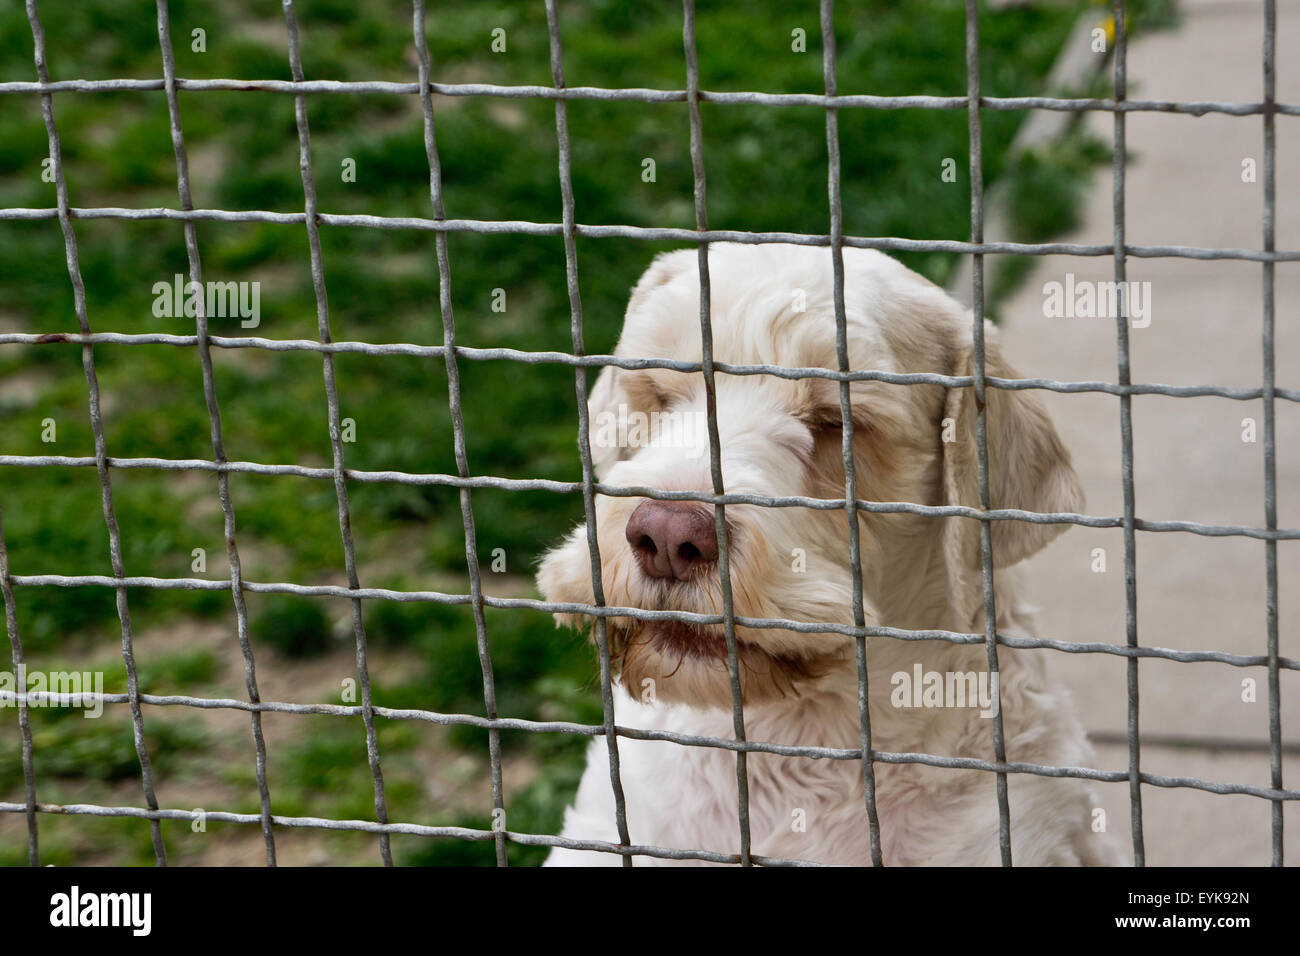 dog behind a fence in a dog rescue center - Stock Image